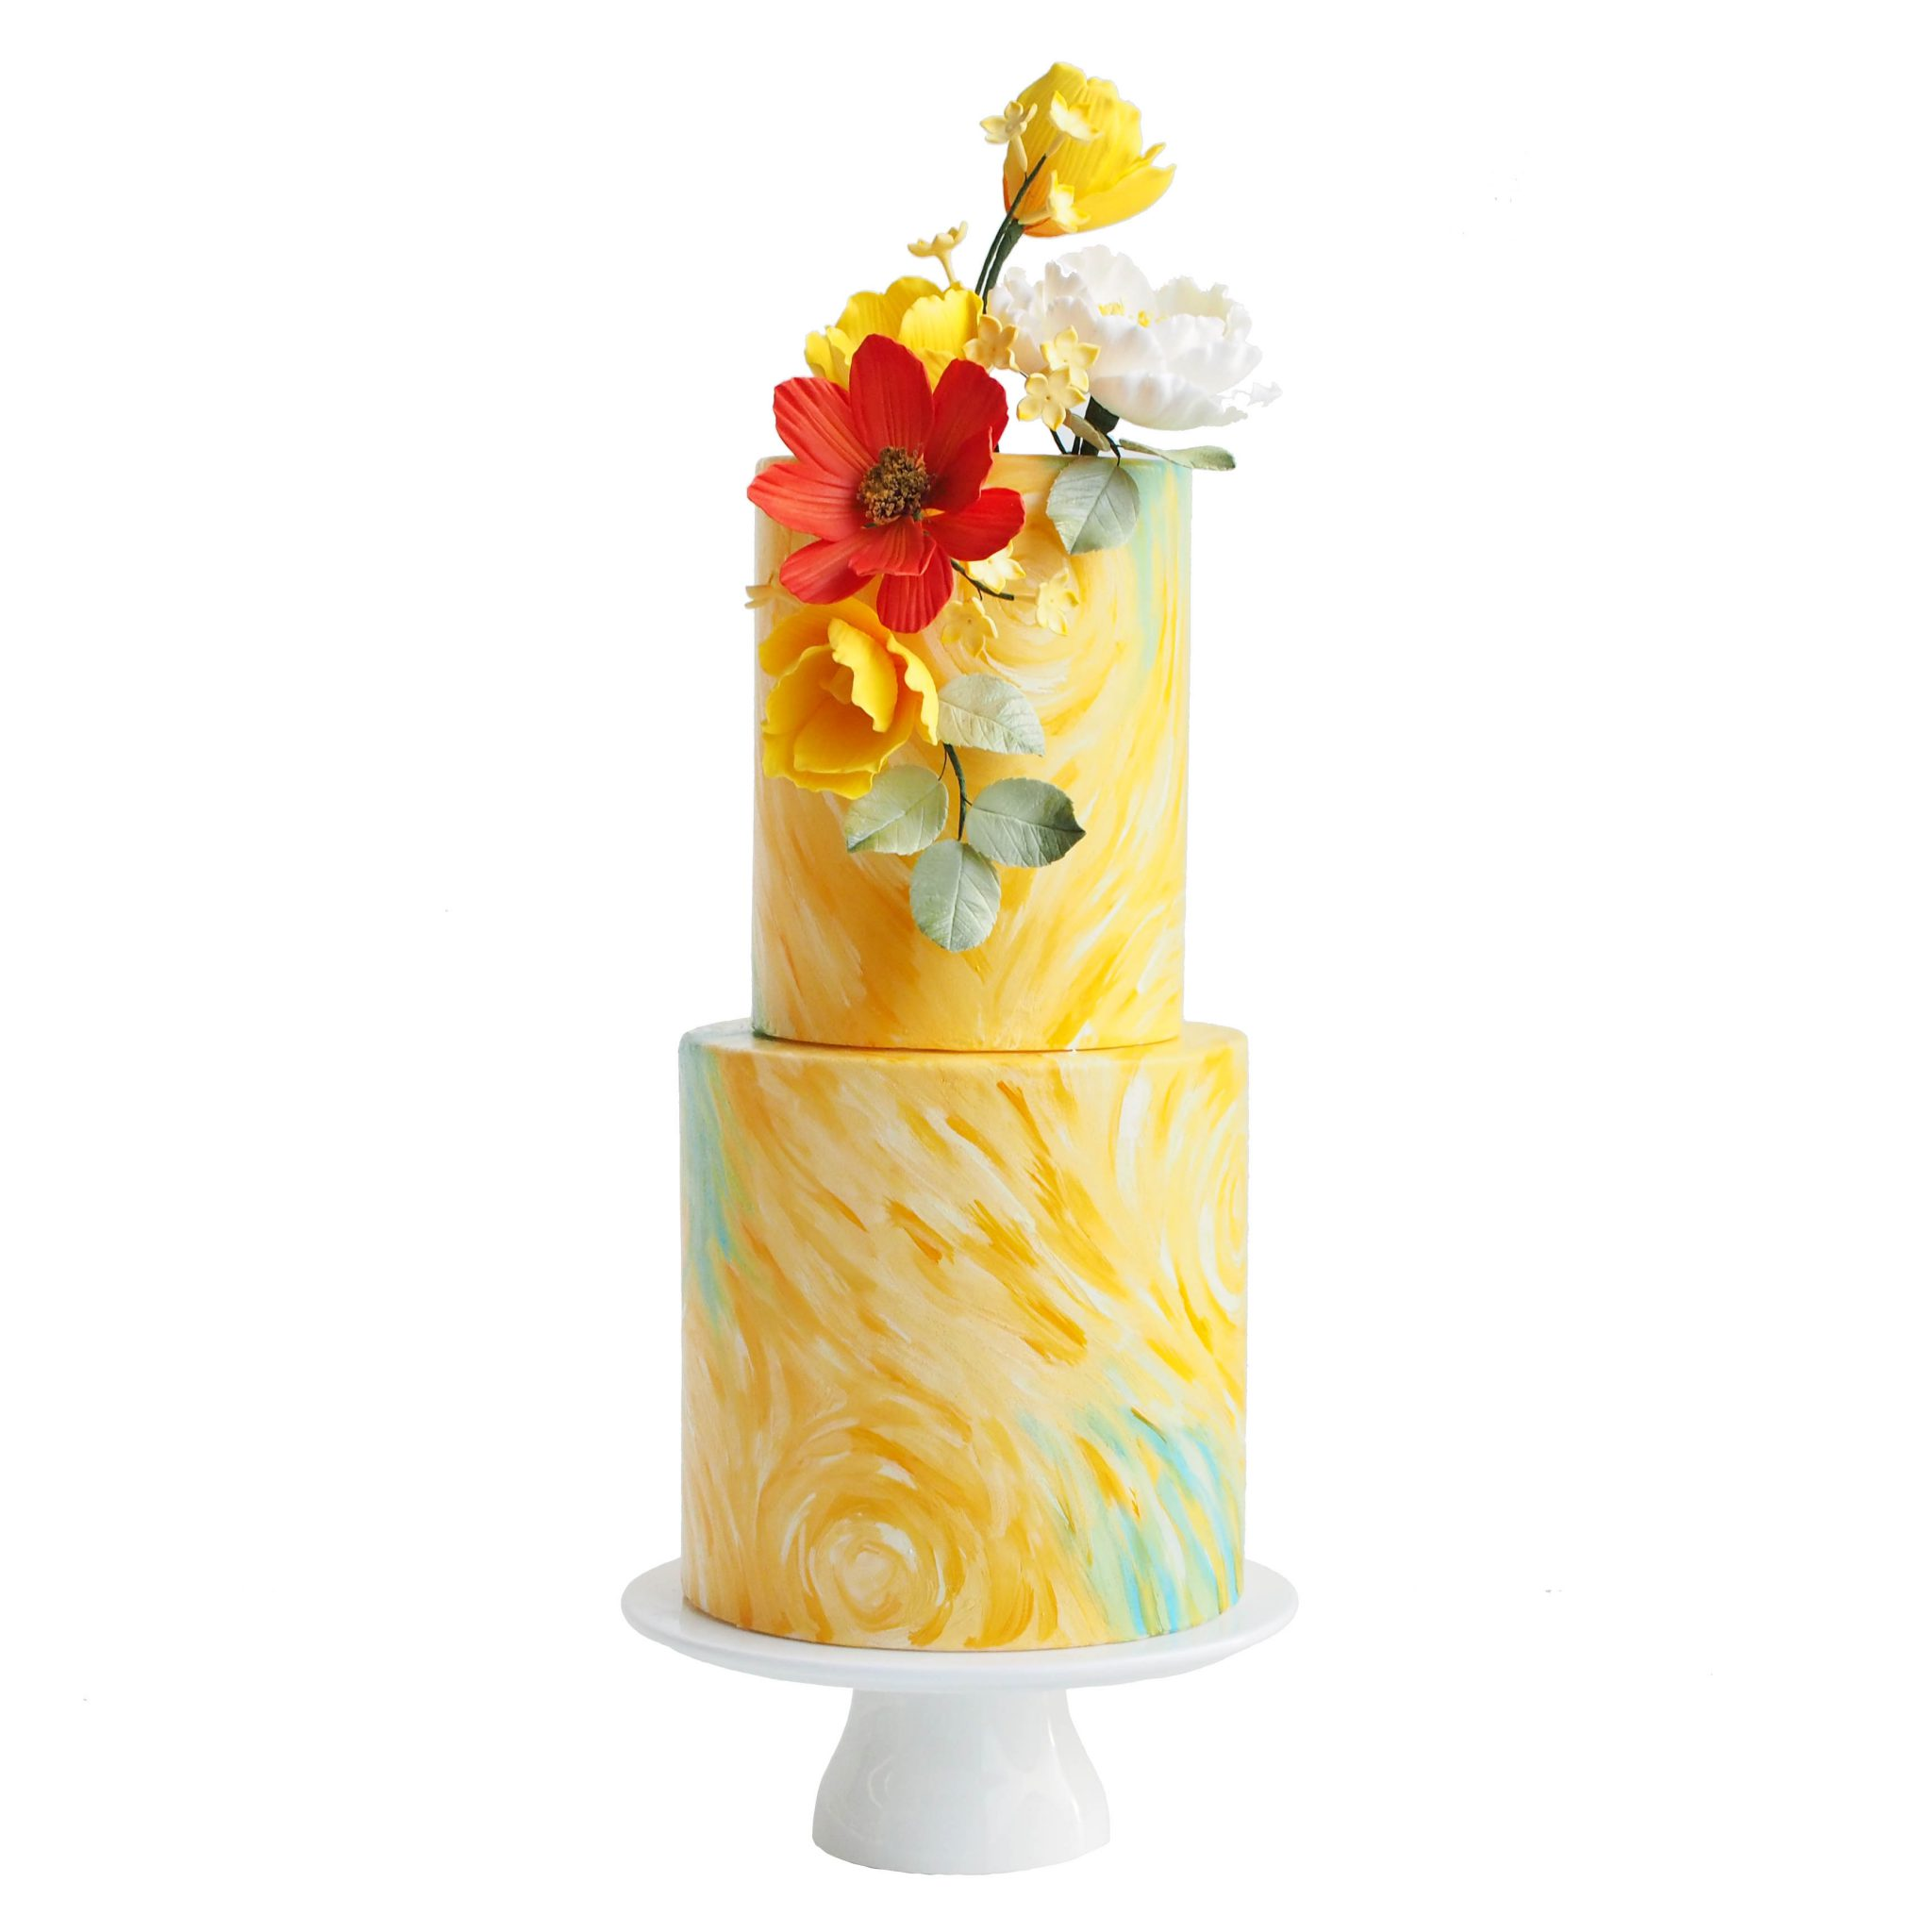 Yellow Painted Wedding Cake with Bold Flowers